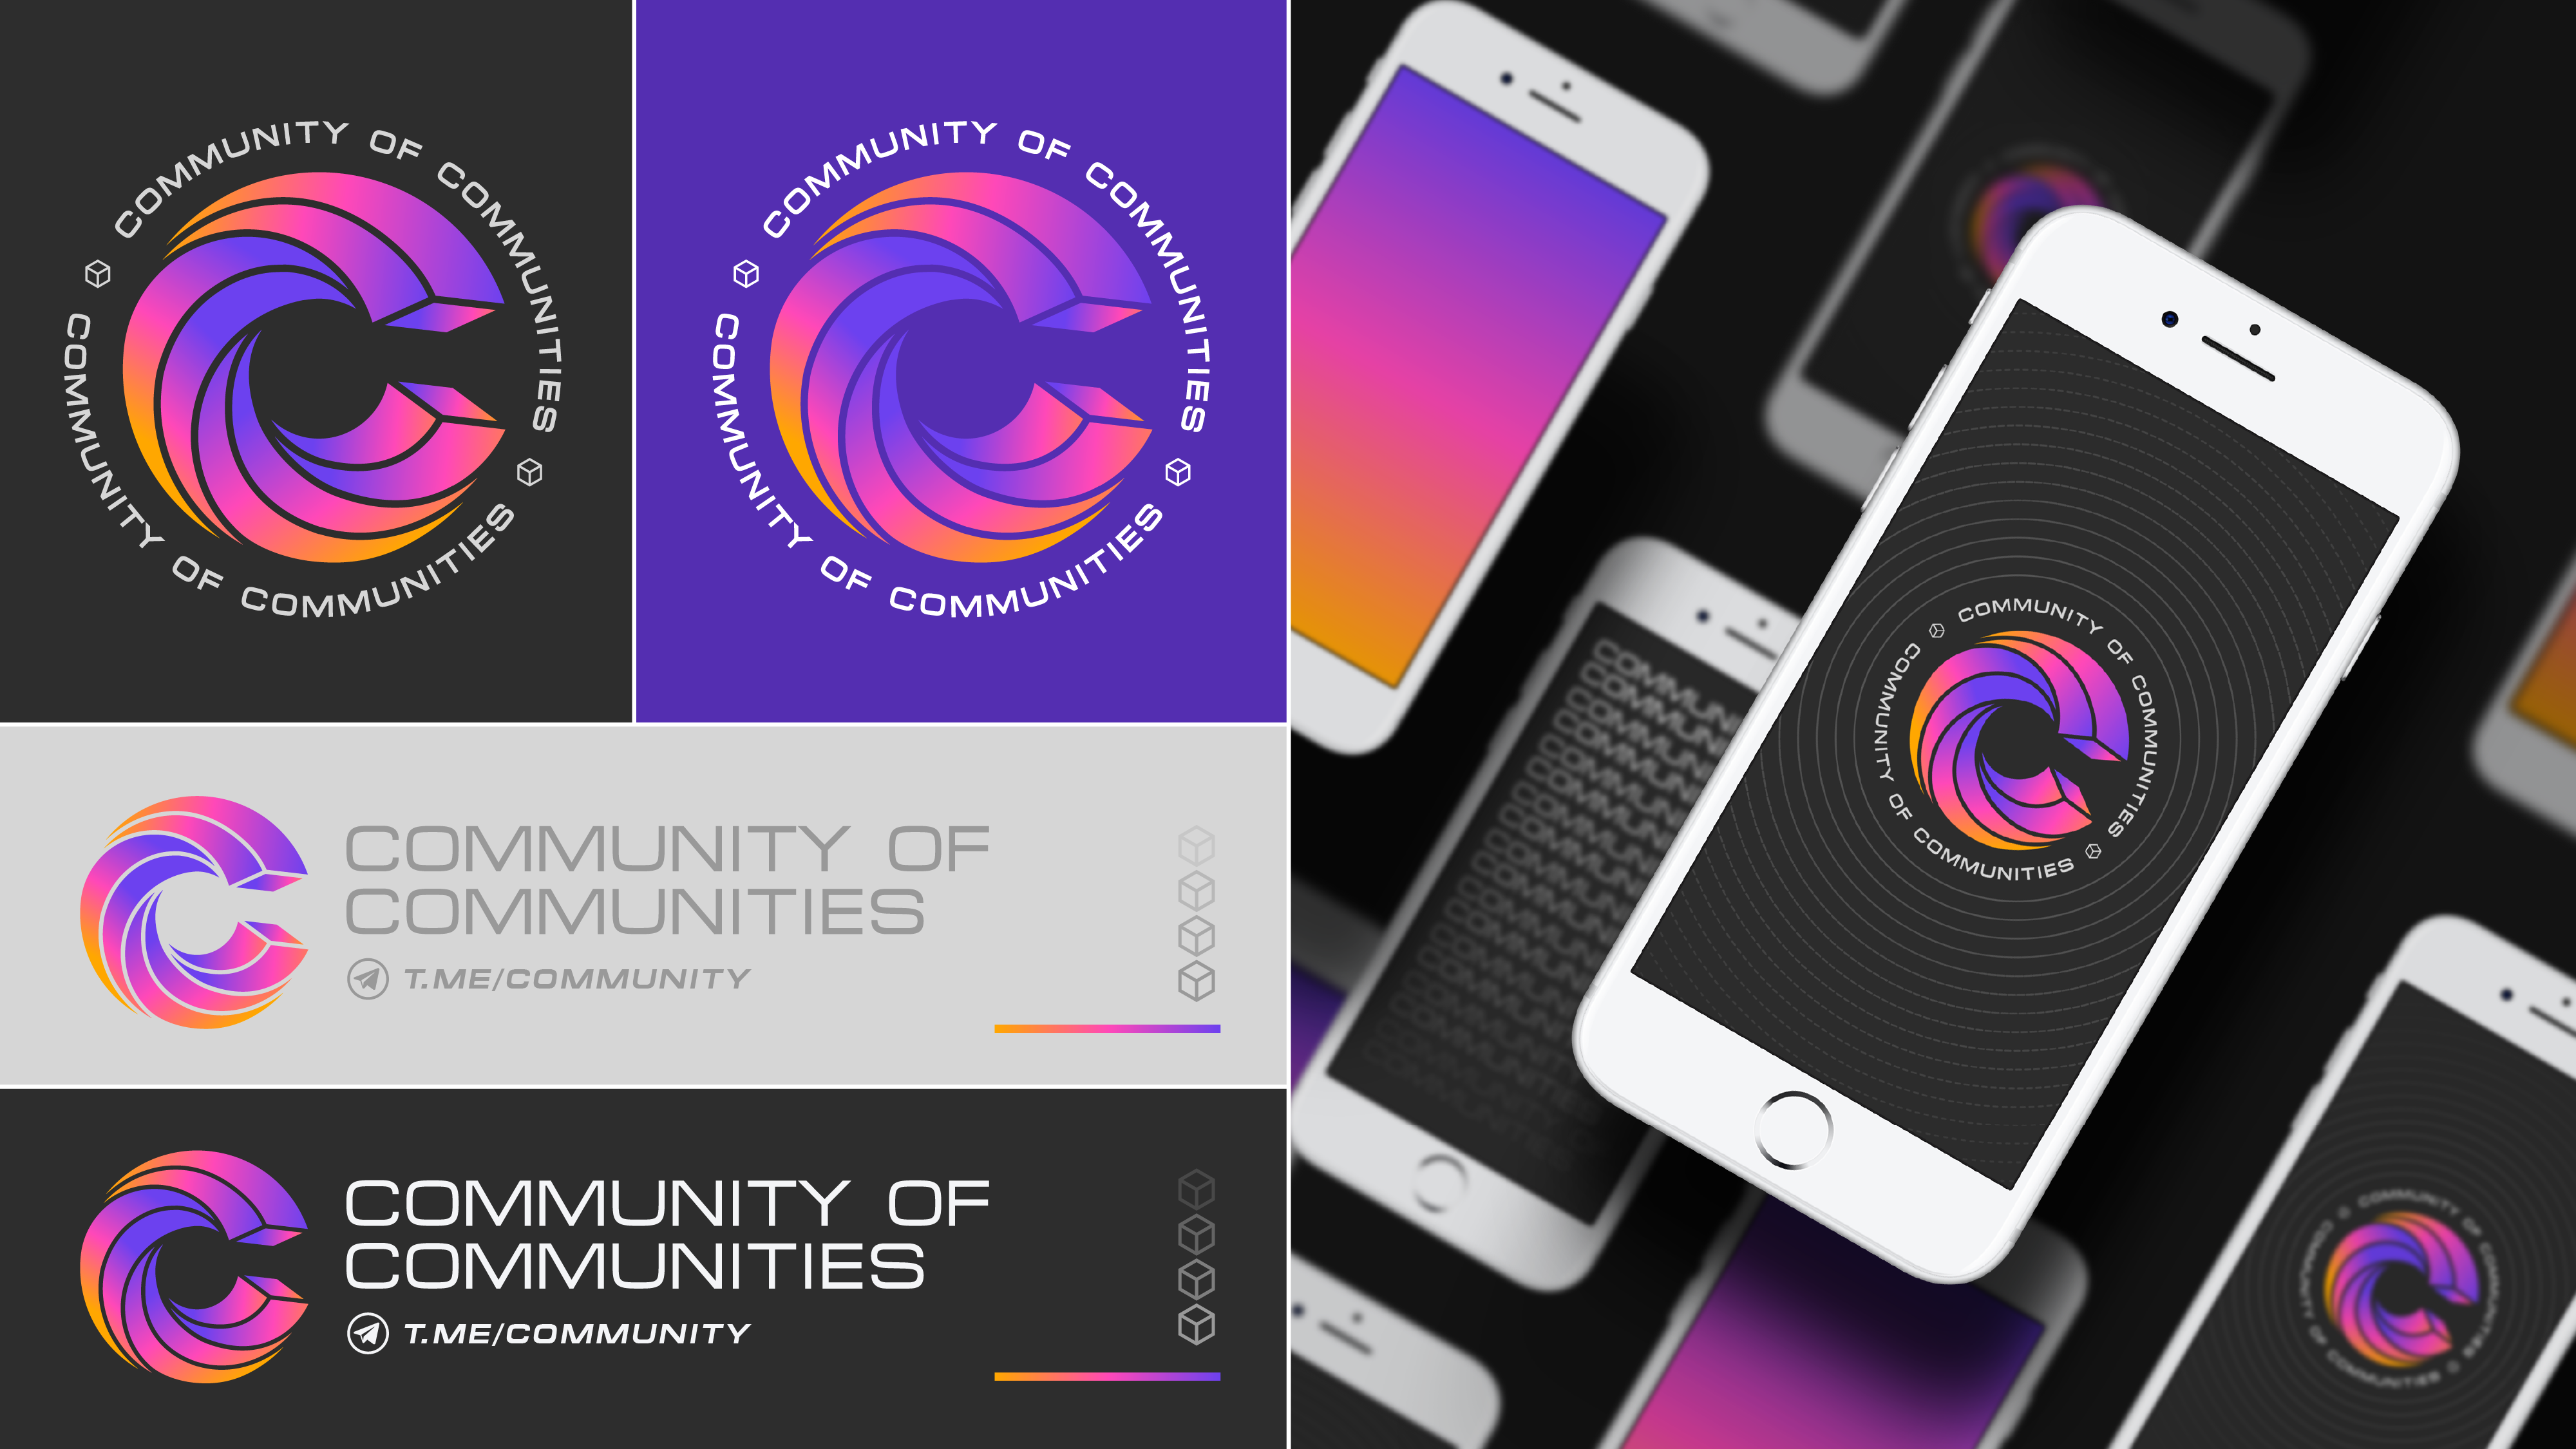 community-of-communities-logo-01.png